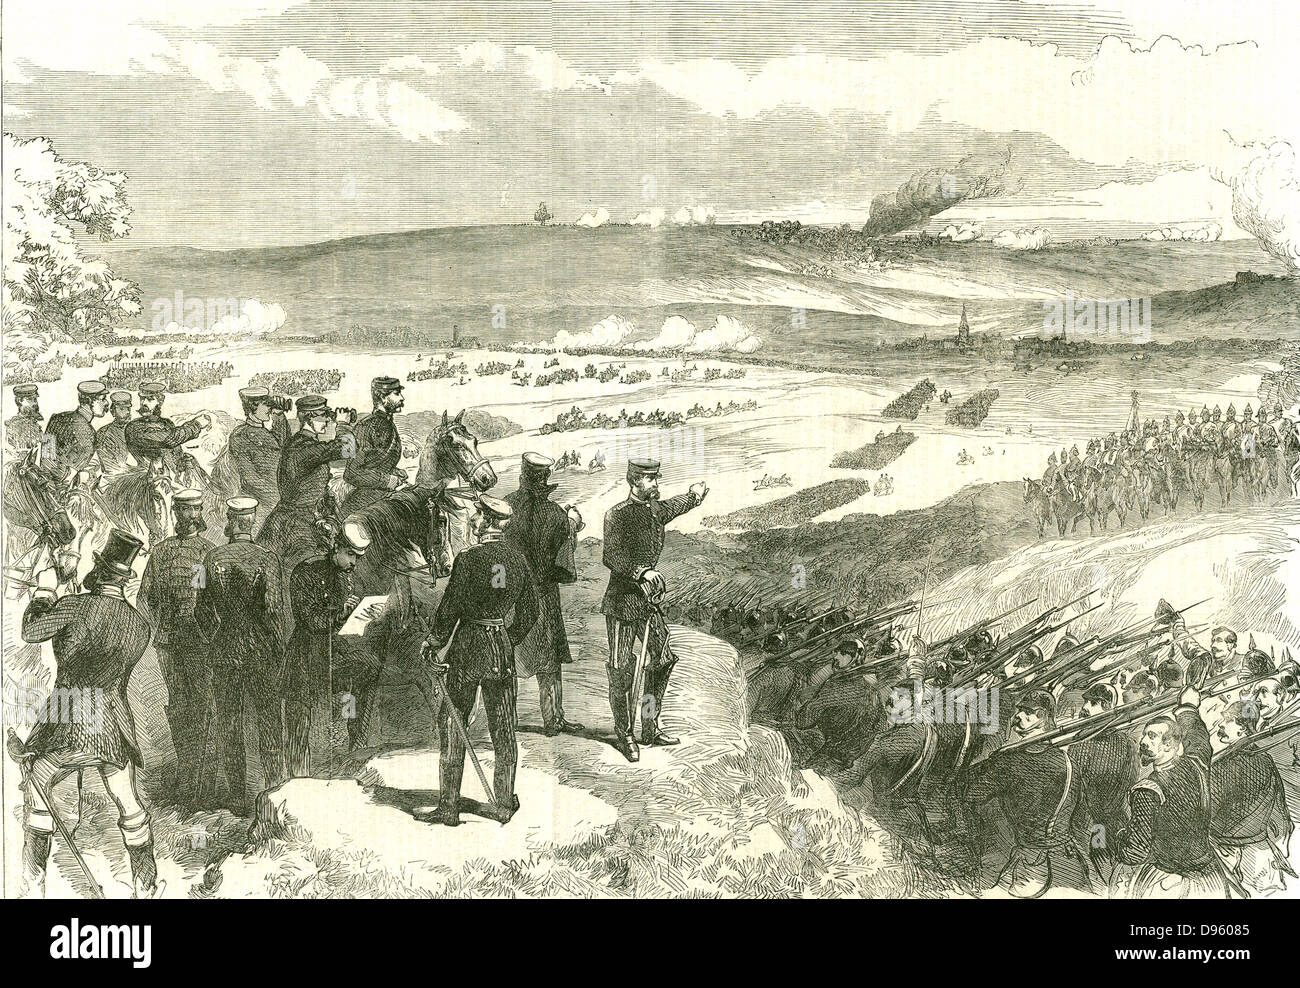 Battle of Sadowa (Sadova, Koniggratz), Bohemia, 3 July 1866, the decisive battle in the Austro-Prussian War.  Austria - Stock Image